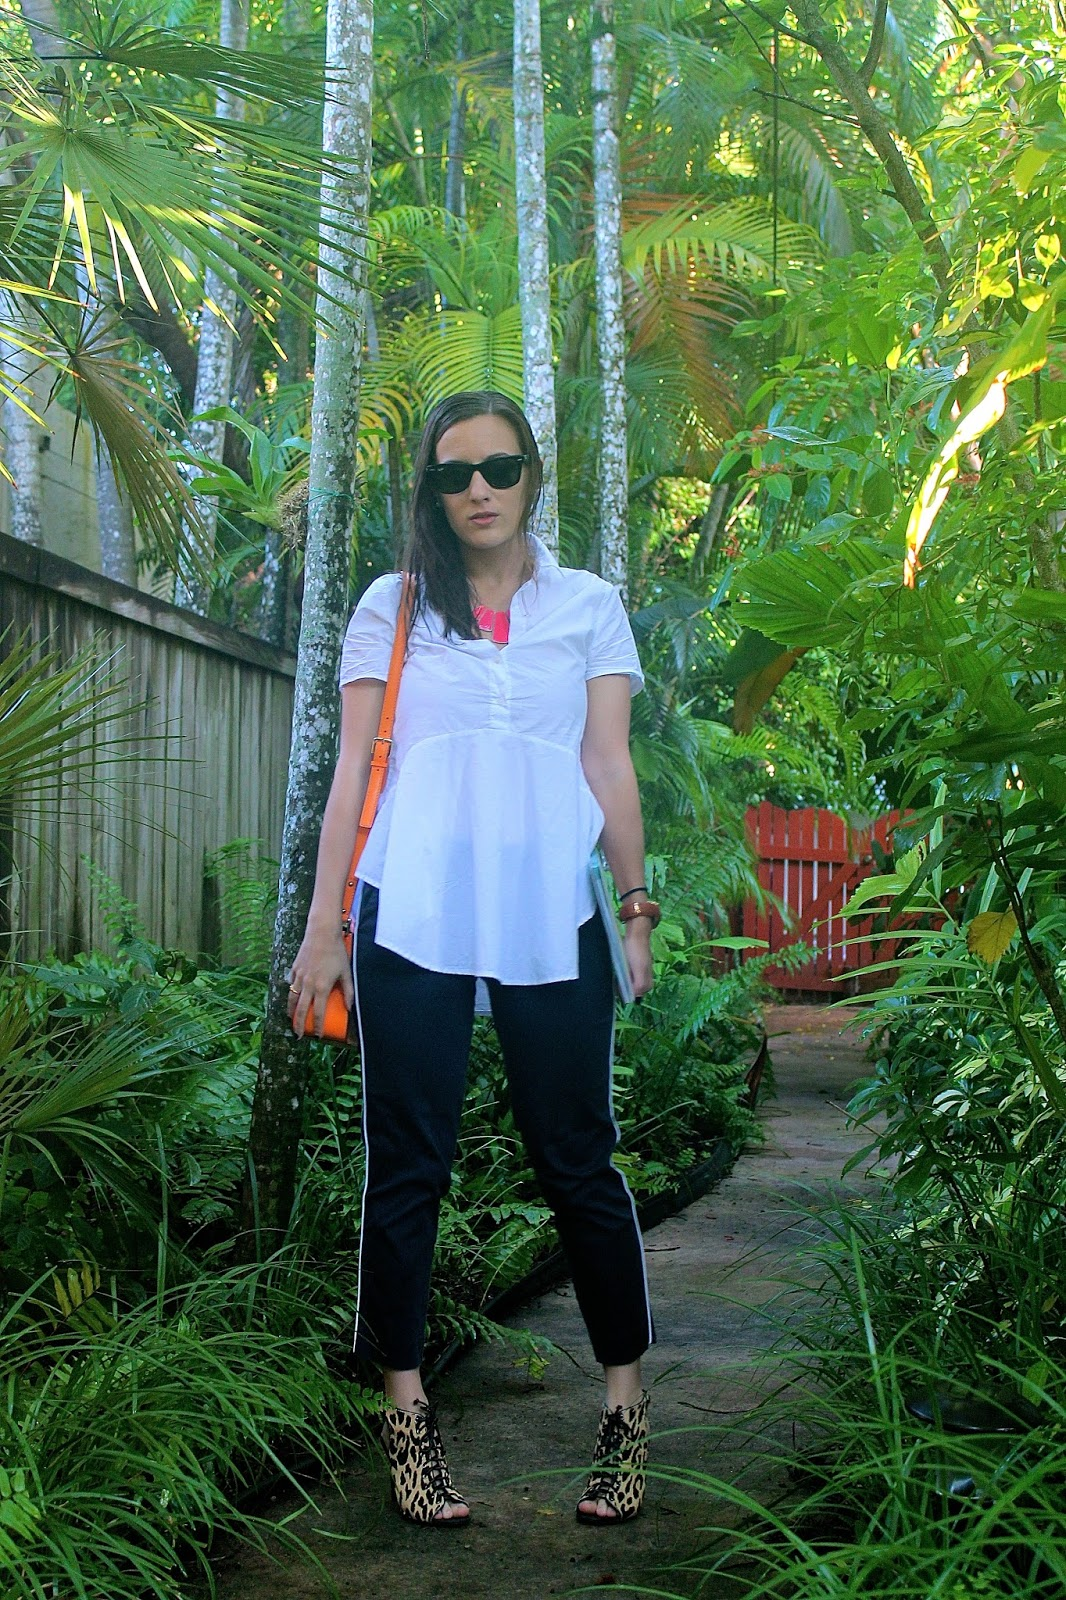 Anthropologie, Macy's, J.Crew, Kate Spade, Ray-Ban, nordstrom, Akribos XXIV, style blog, fashion blog, Miami fashion blogger, ootd, fall fashion